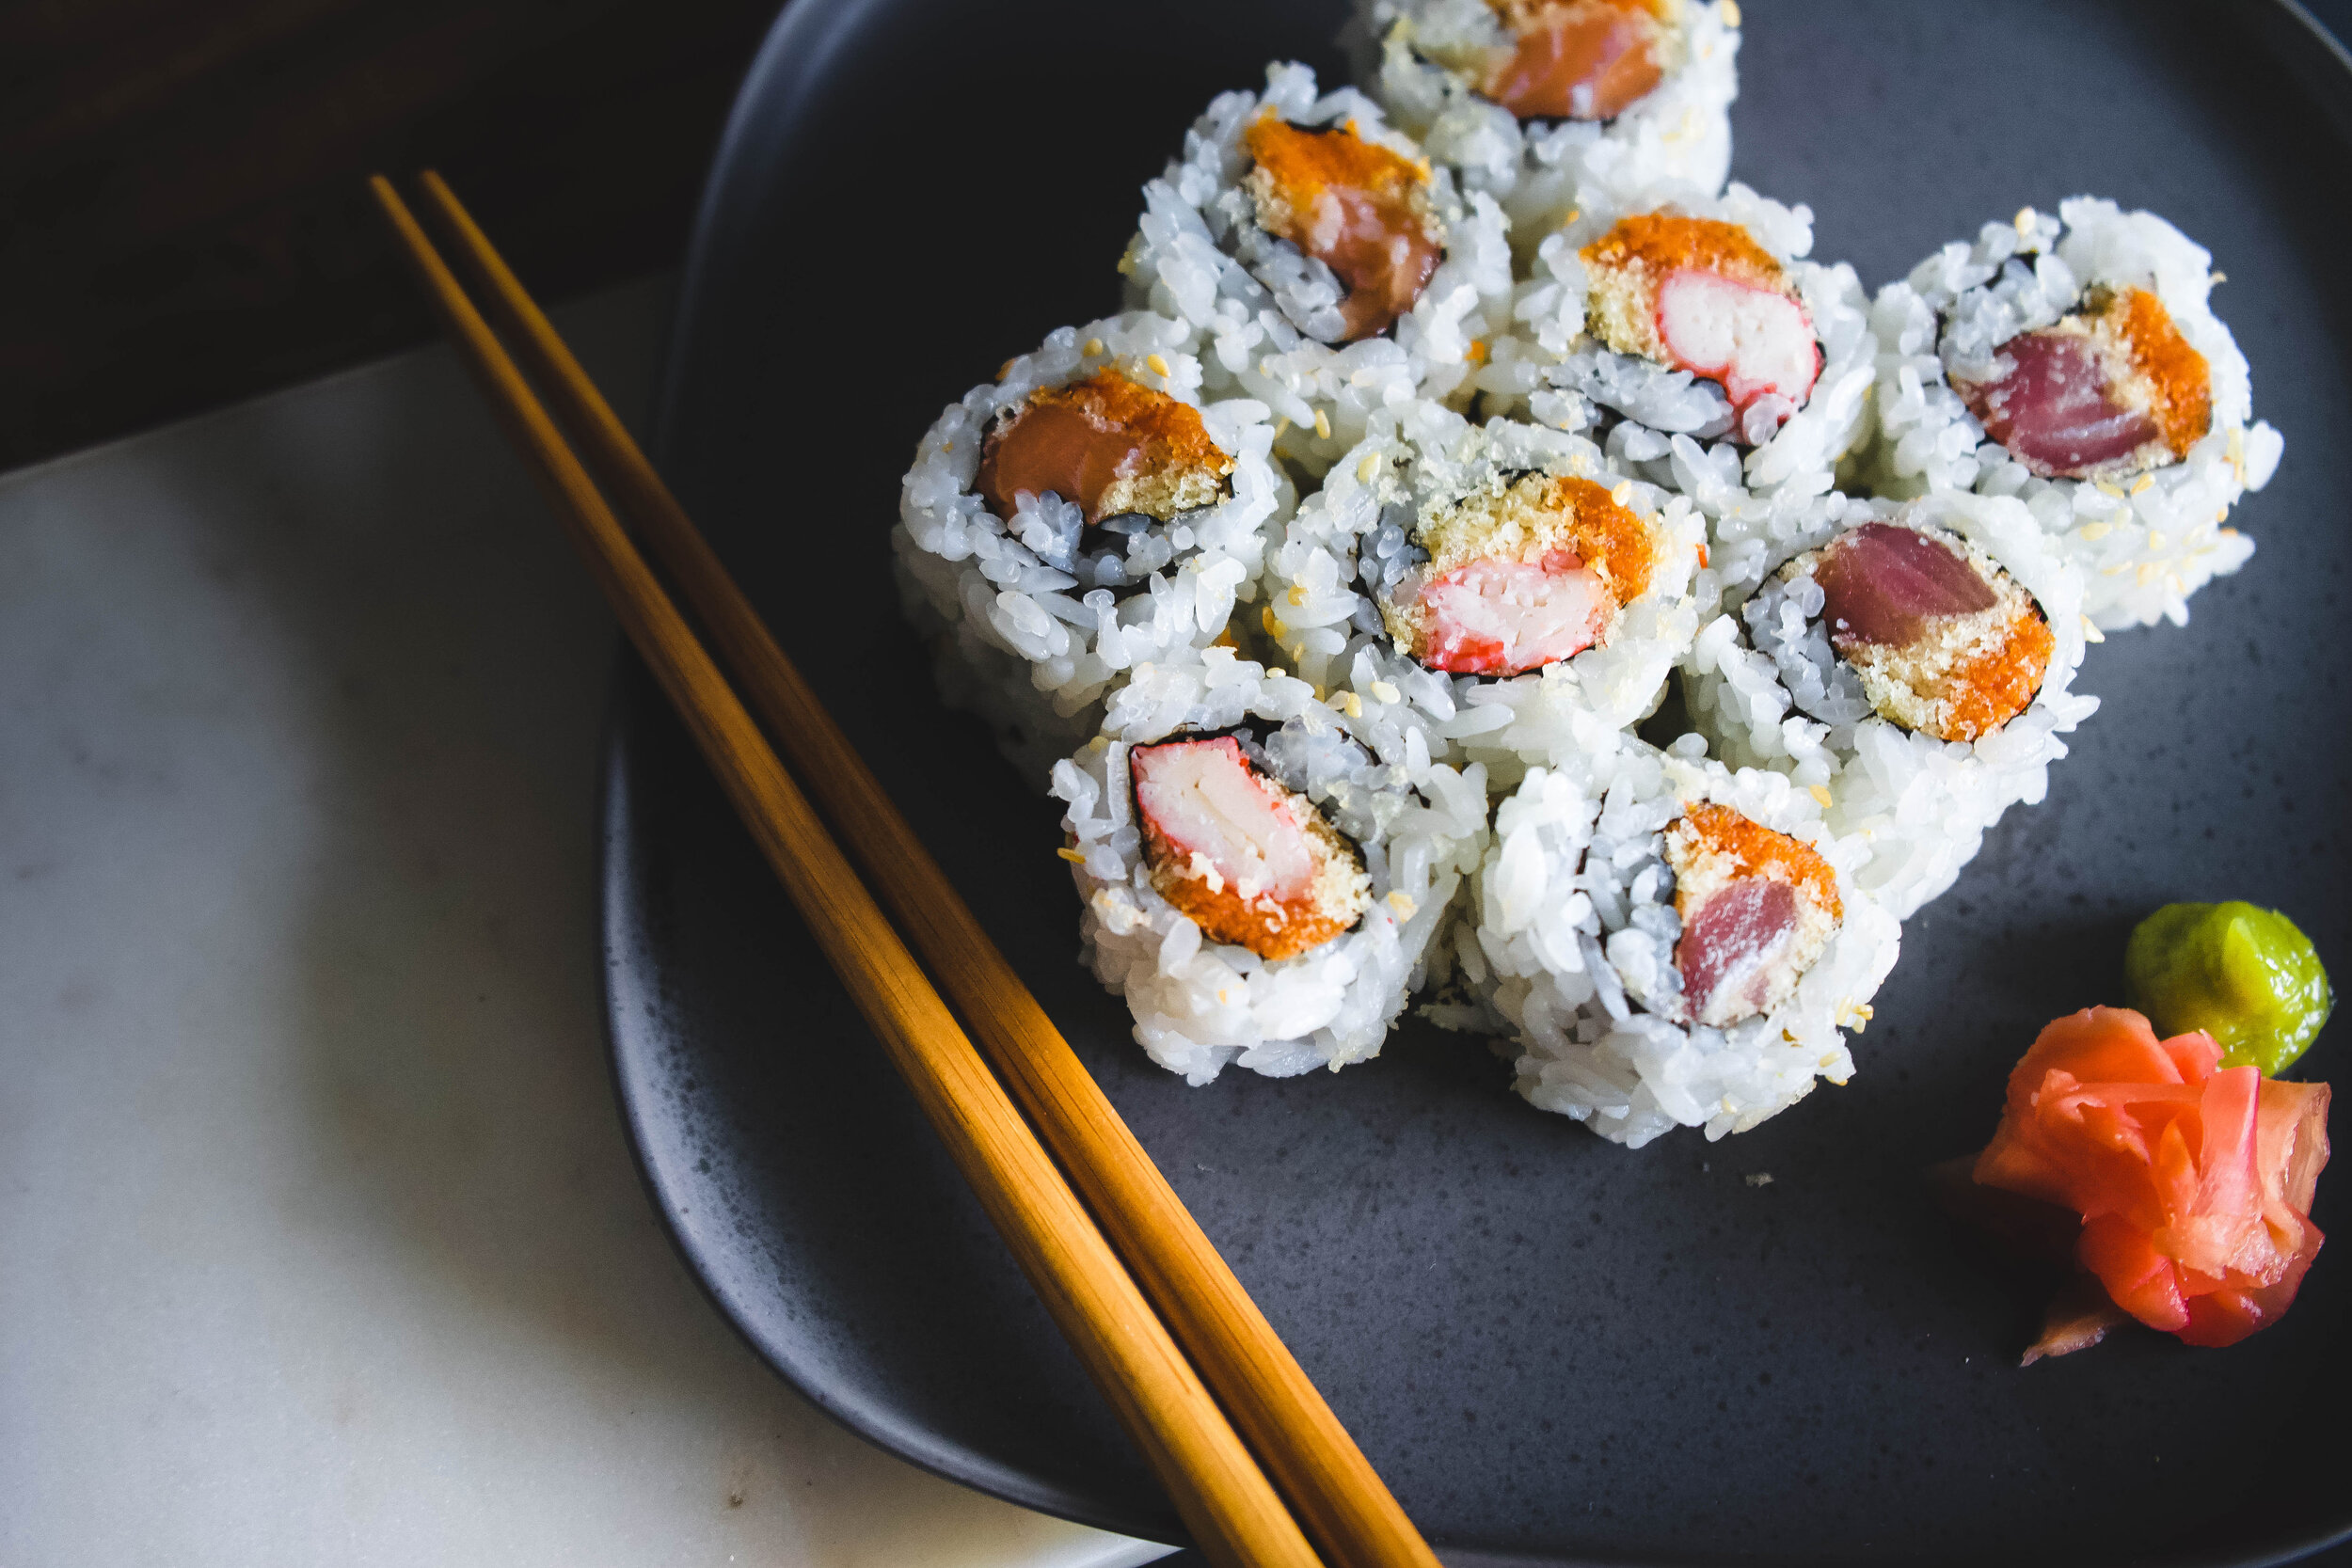 Are Sushi Rolls Good For Weight Loss? (11 Healthy Sushi Rolls For Weight Loss)